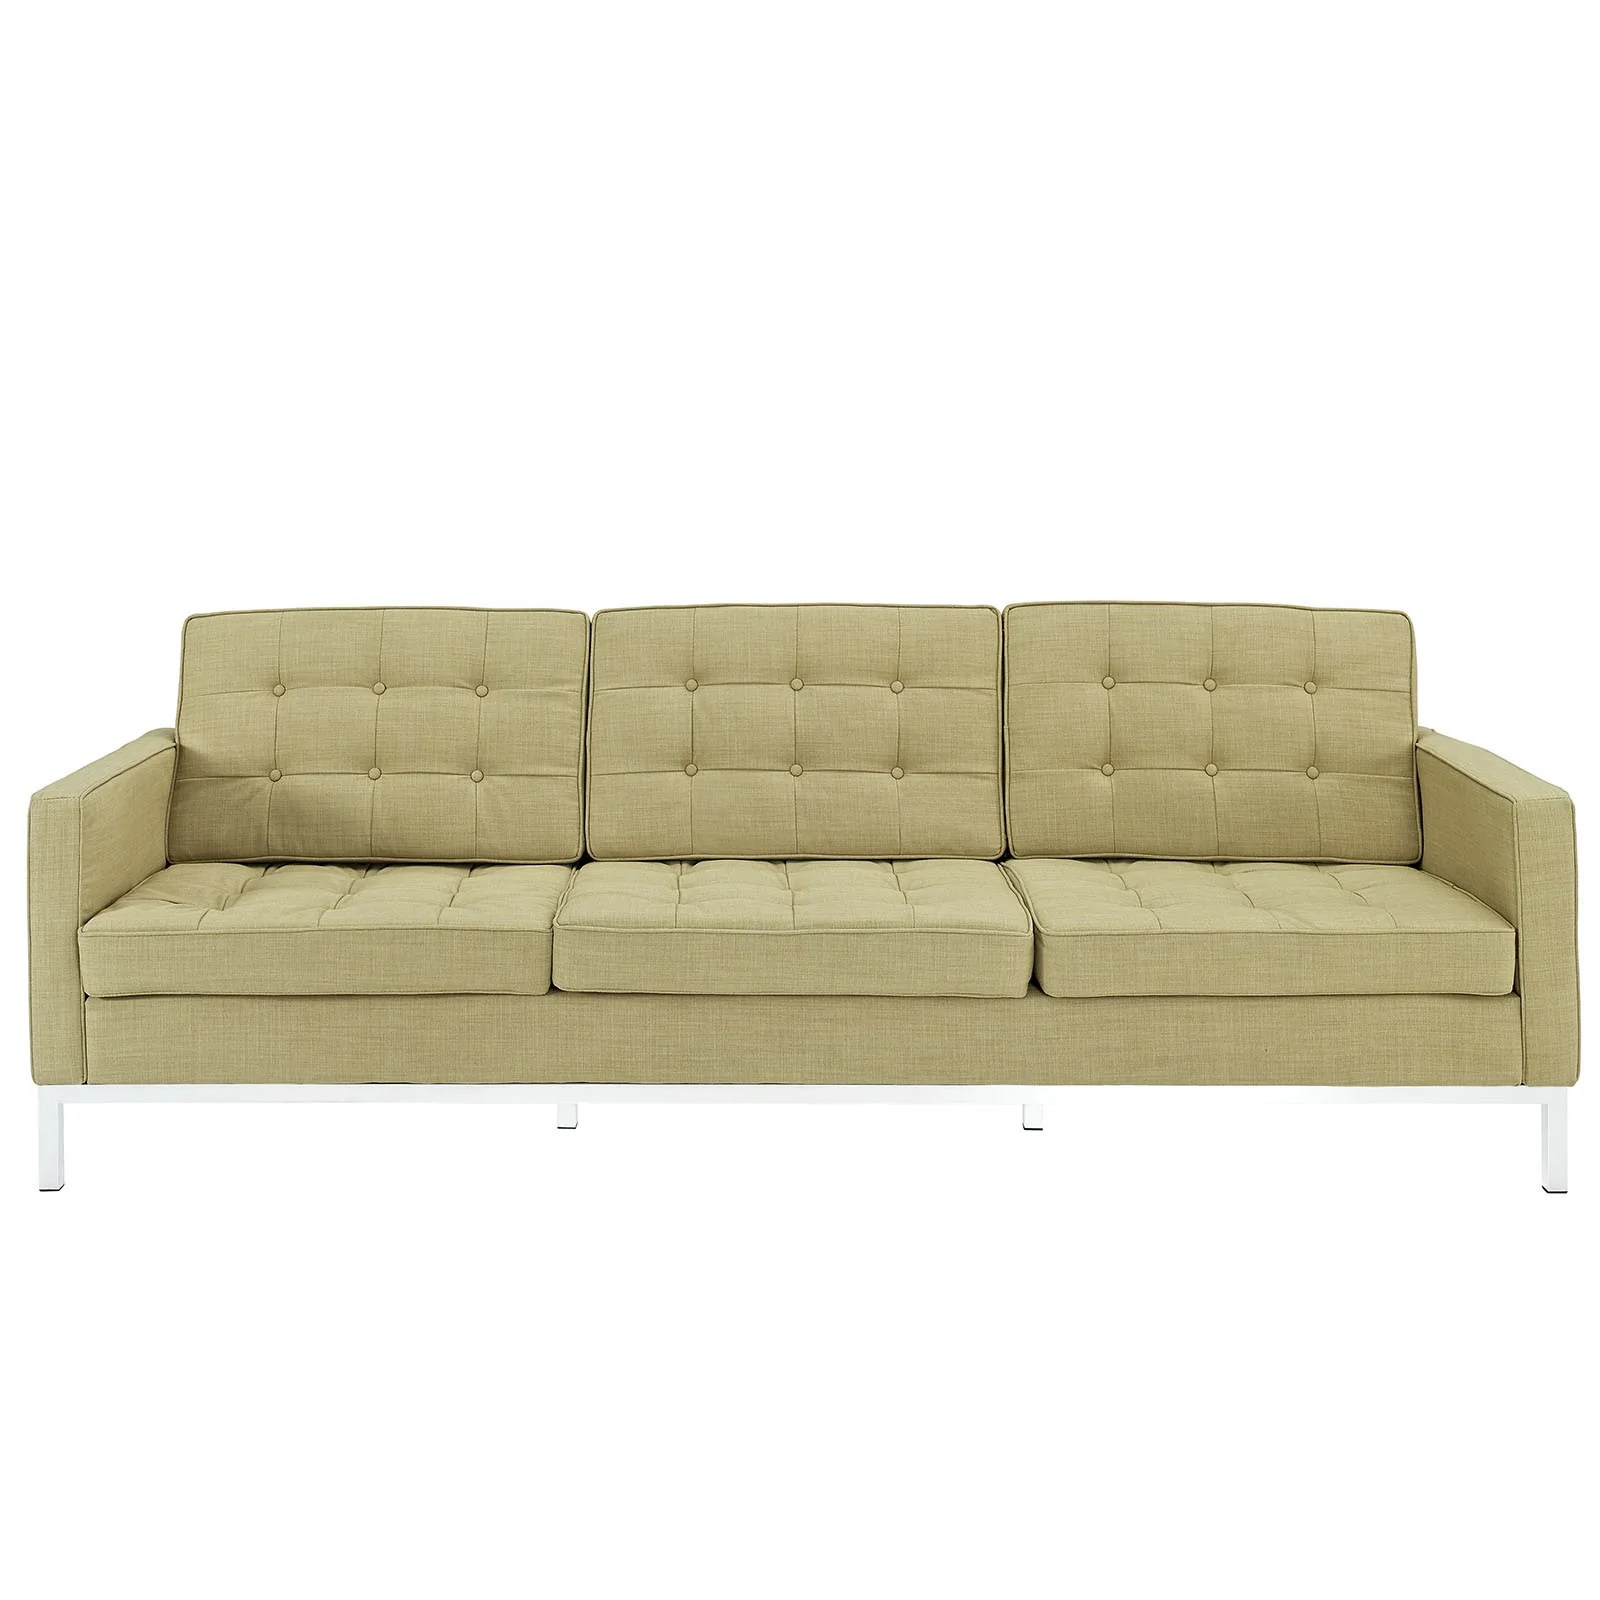 sofa florence knoll replica bed fitted sheet reproduction fabric the modern source